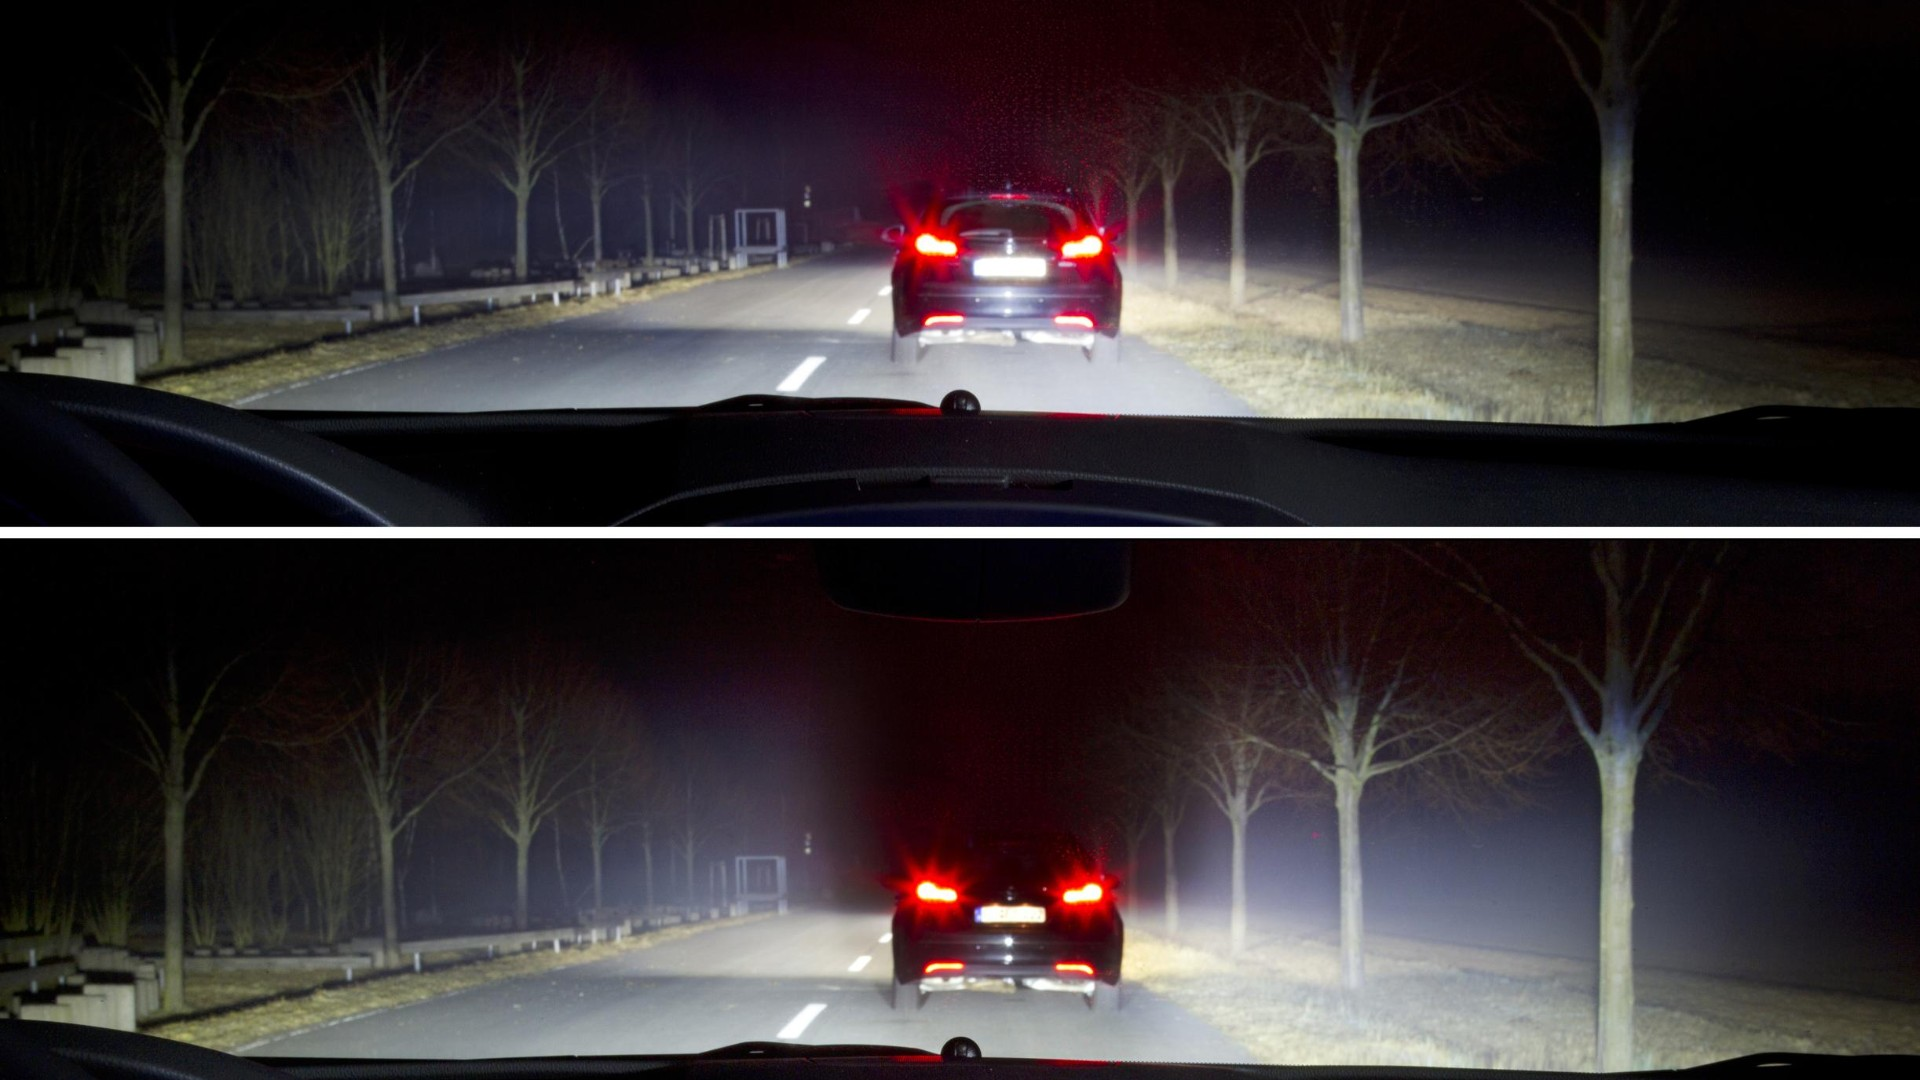 Are modern car headlights too bright?